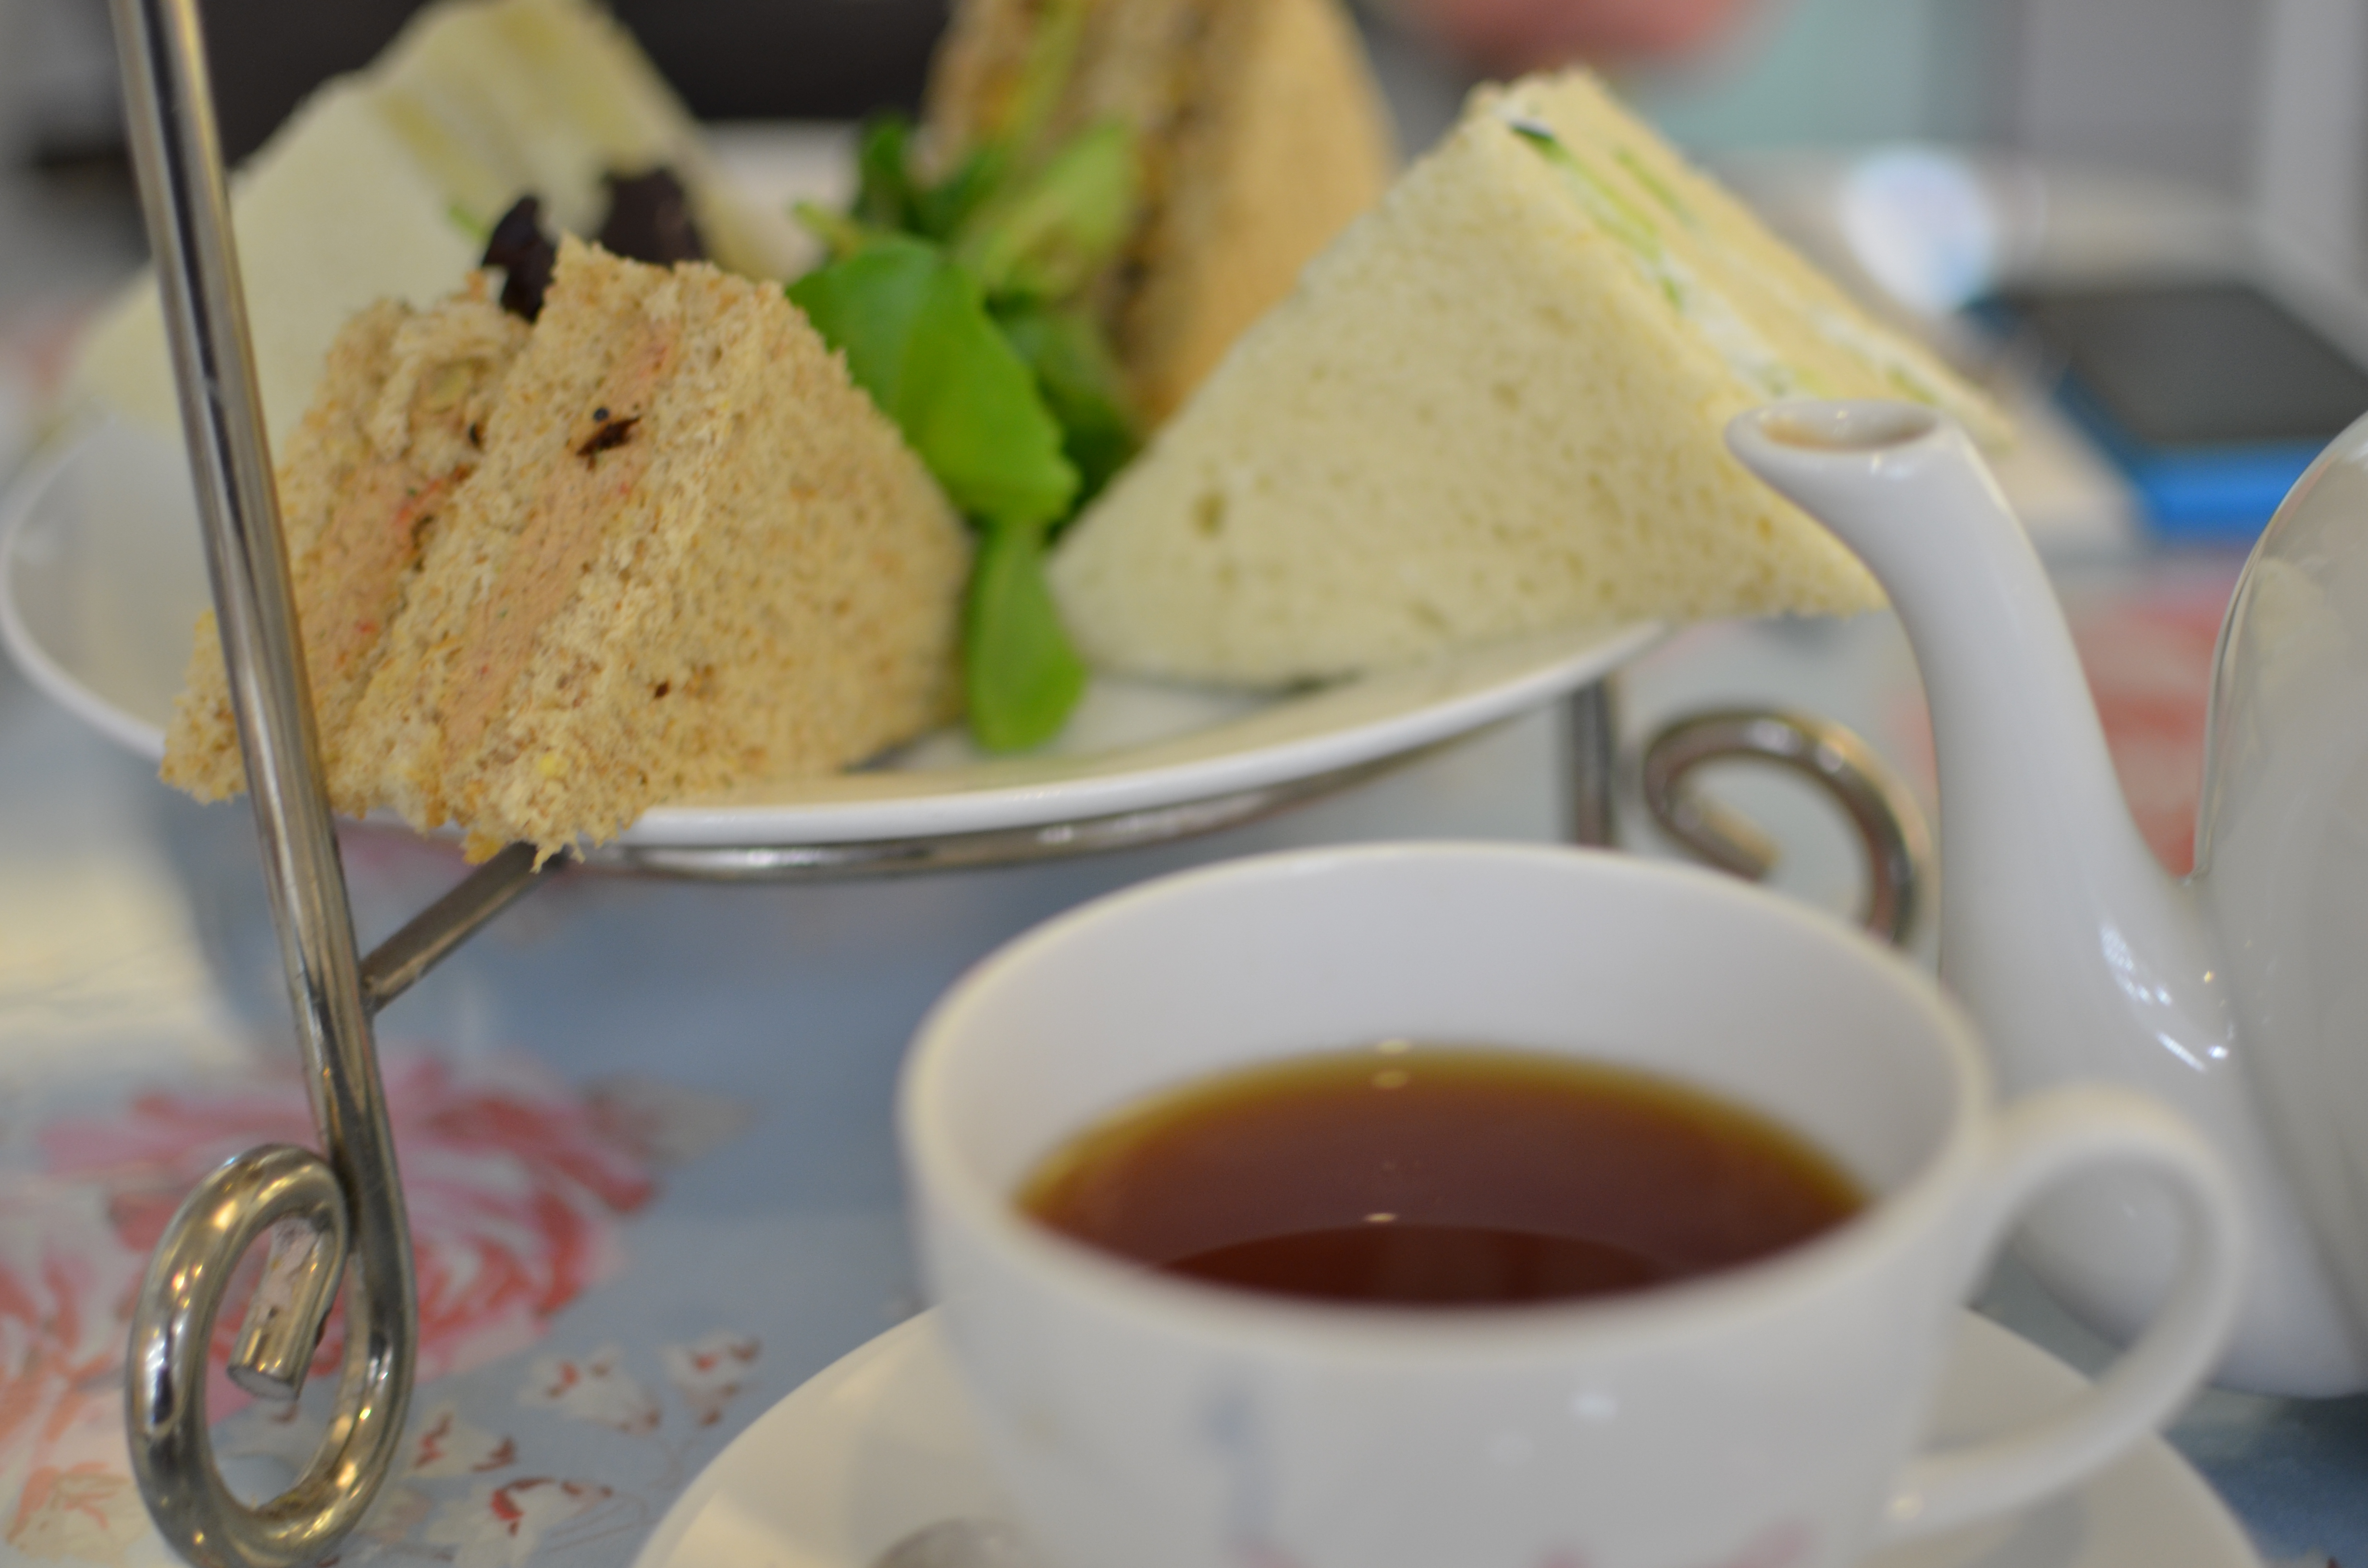 Afternoon Tea at Crown and Crumpet